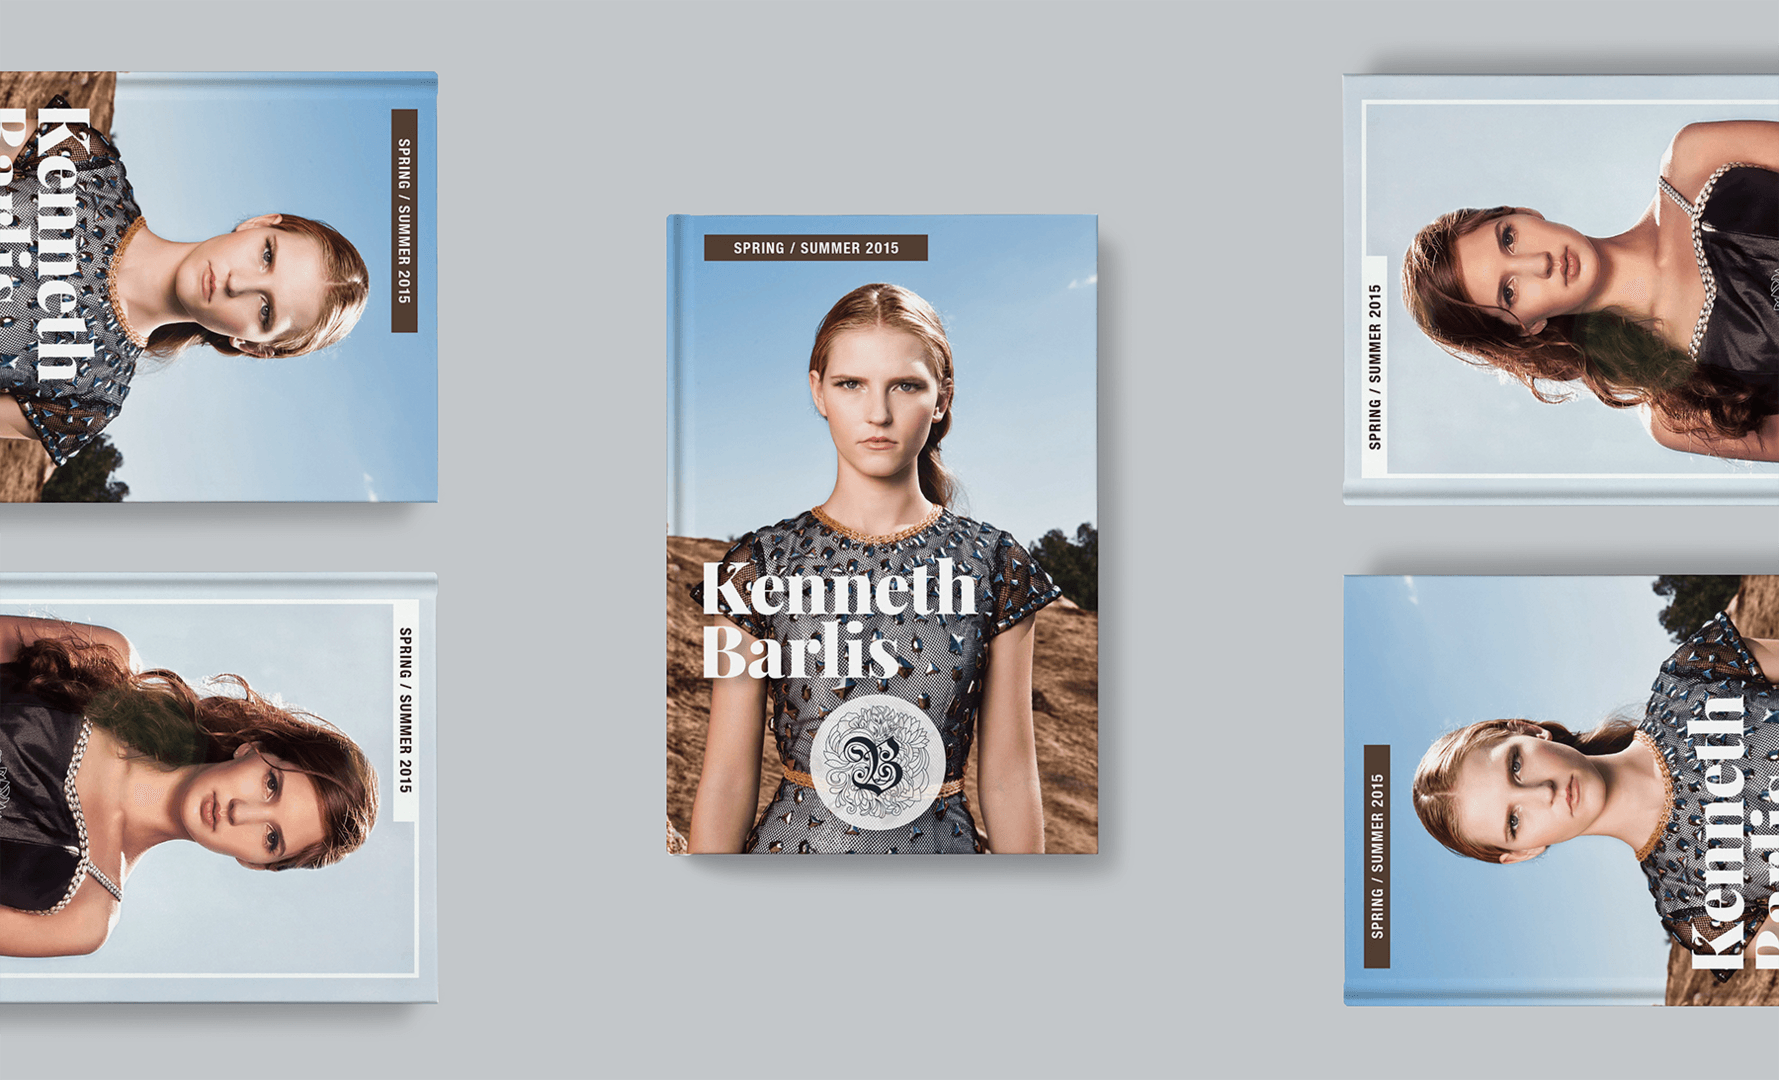 Luxury Fashion Brand Lookbook Covers